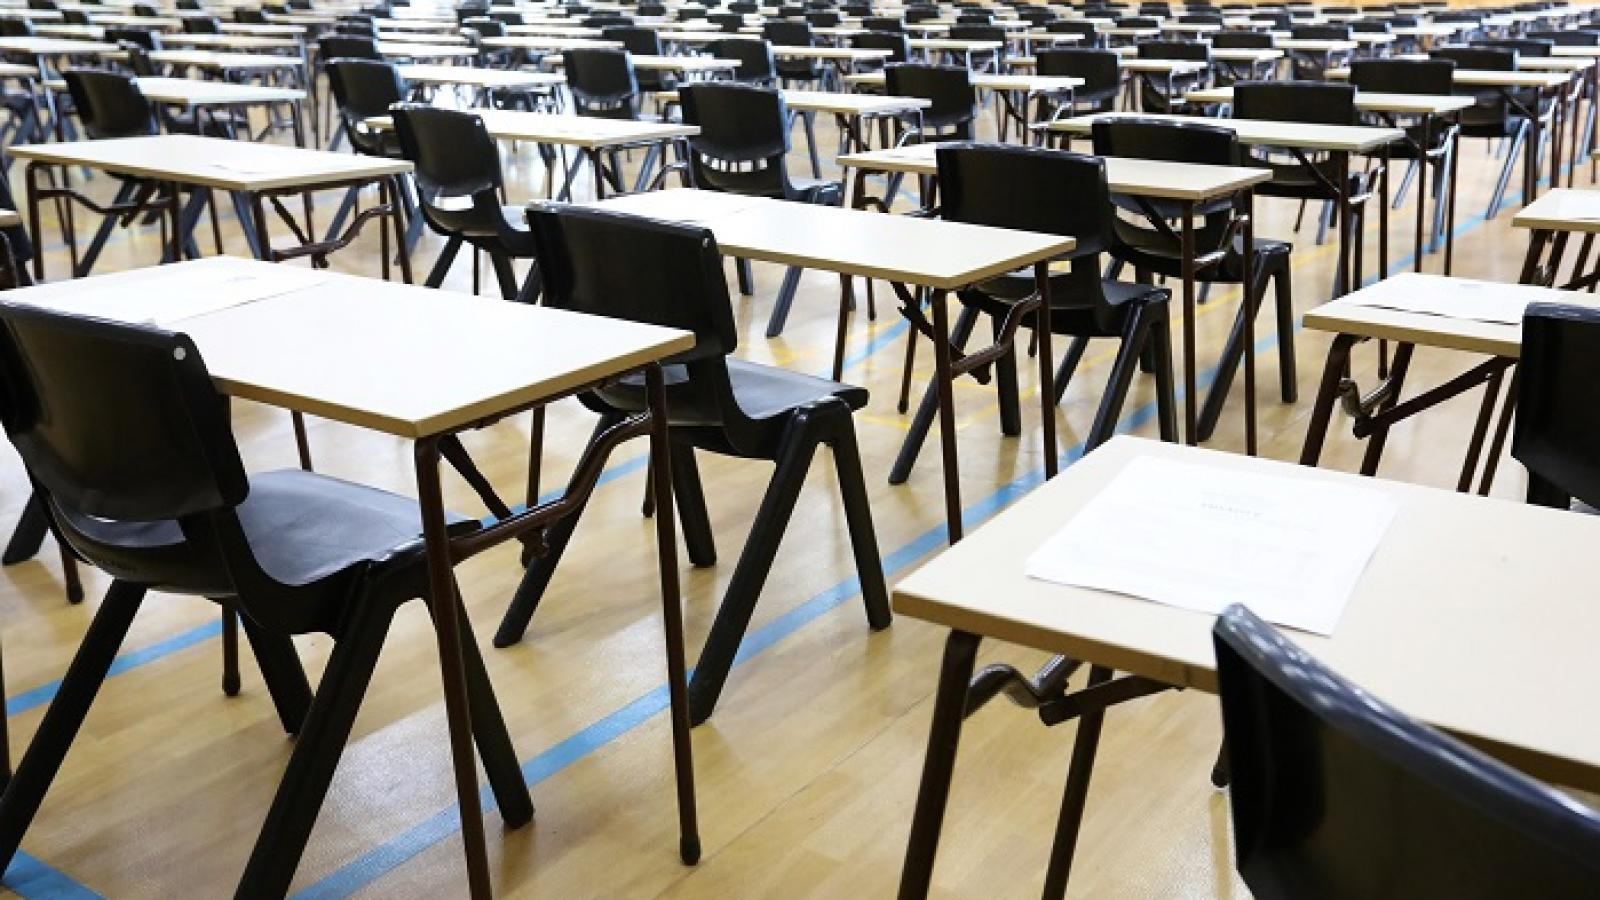 Desks and chairs in an exam hall